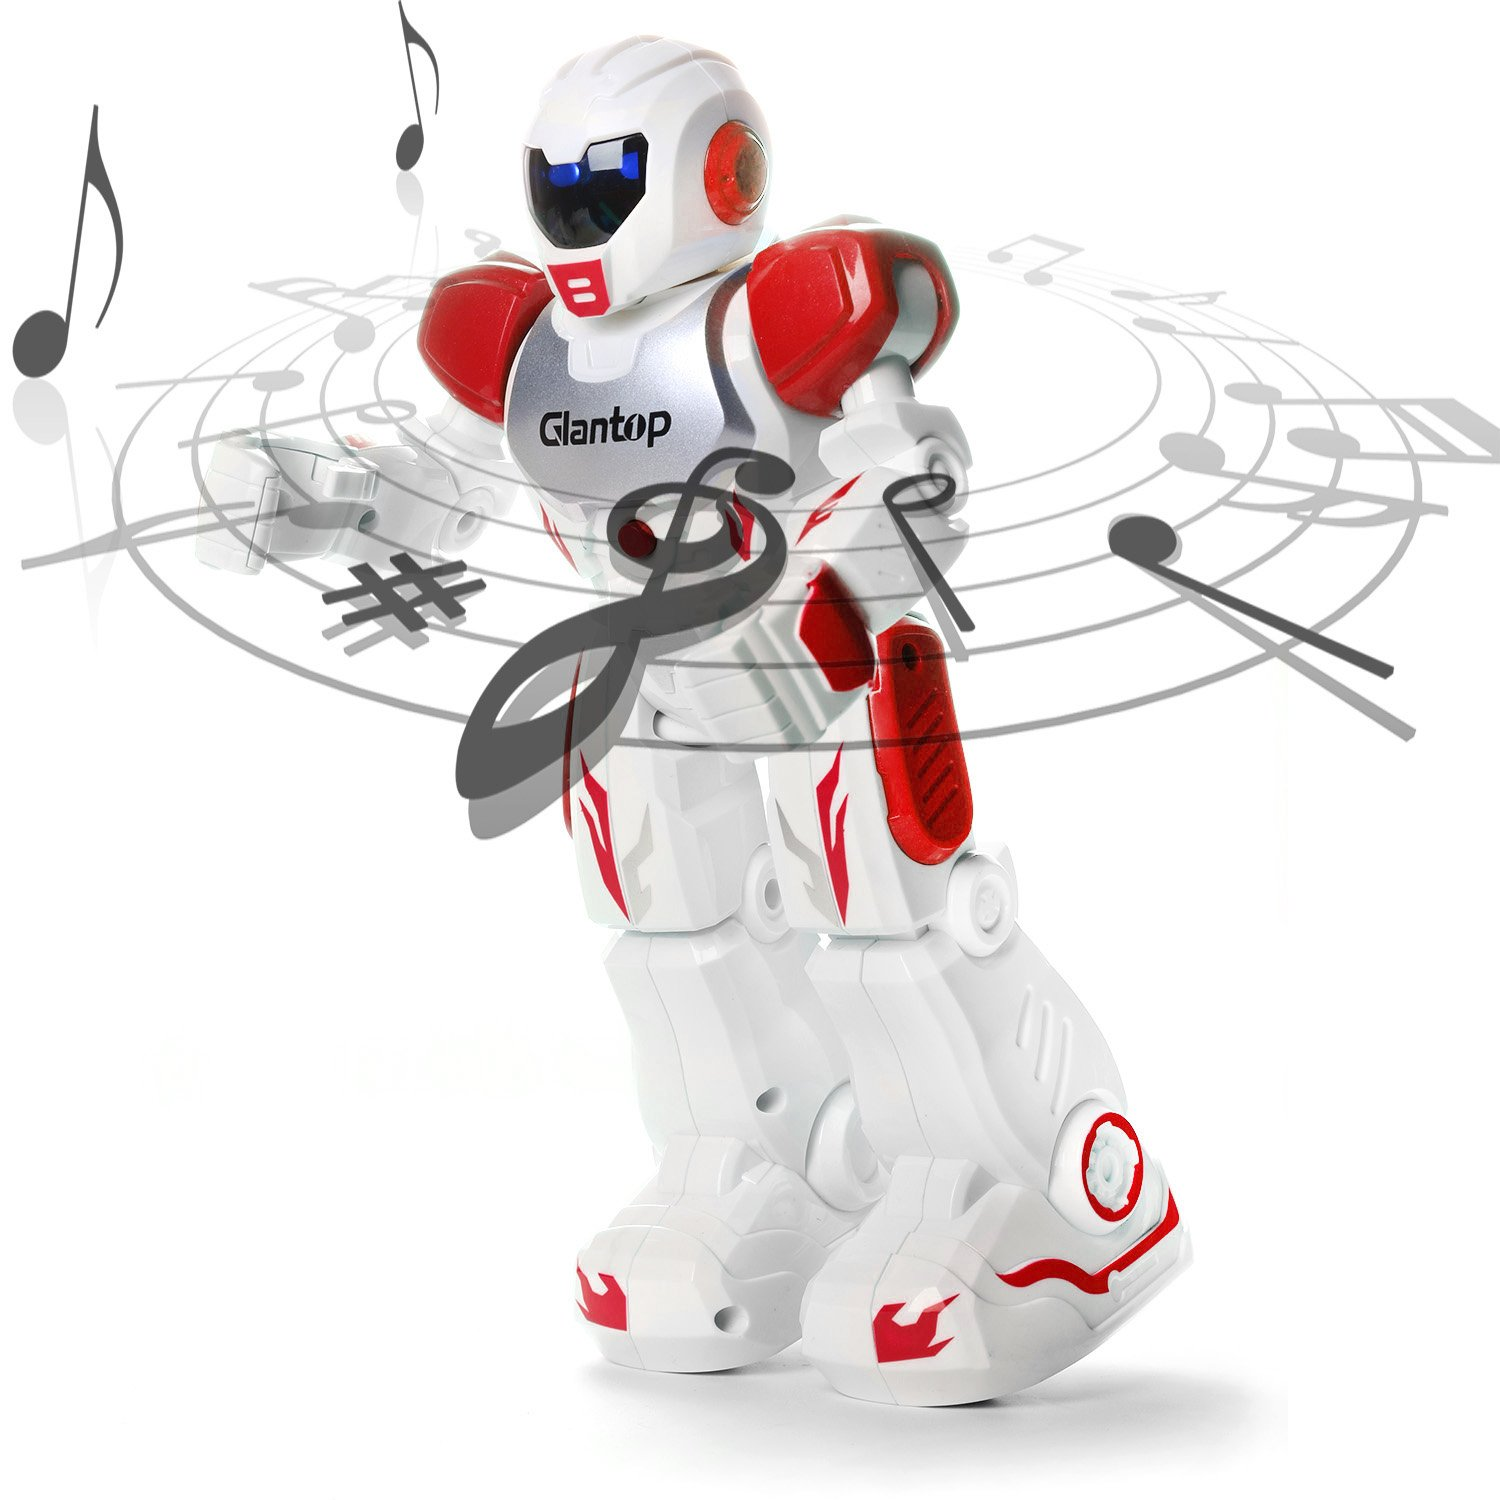 Glantop Remote Control RC Robots Interactive Walking Singing Dancing Smart Programmable Robotics for Kids Boys Girls (Red) by Glantop (Image #5)